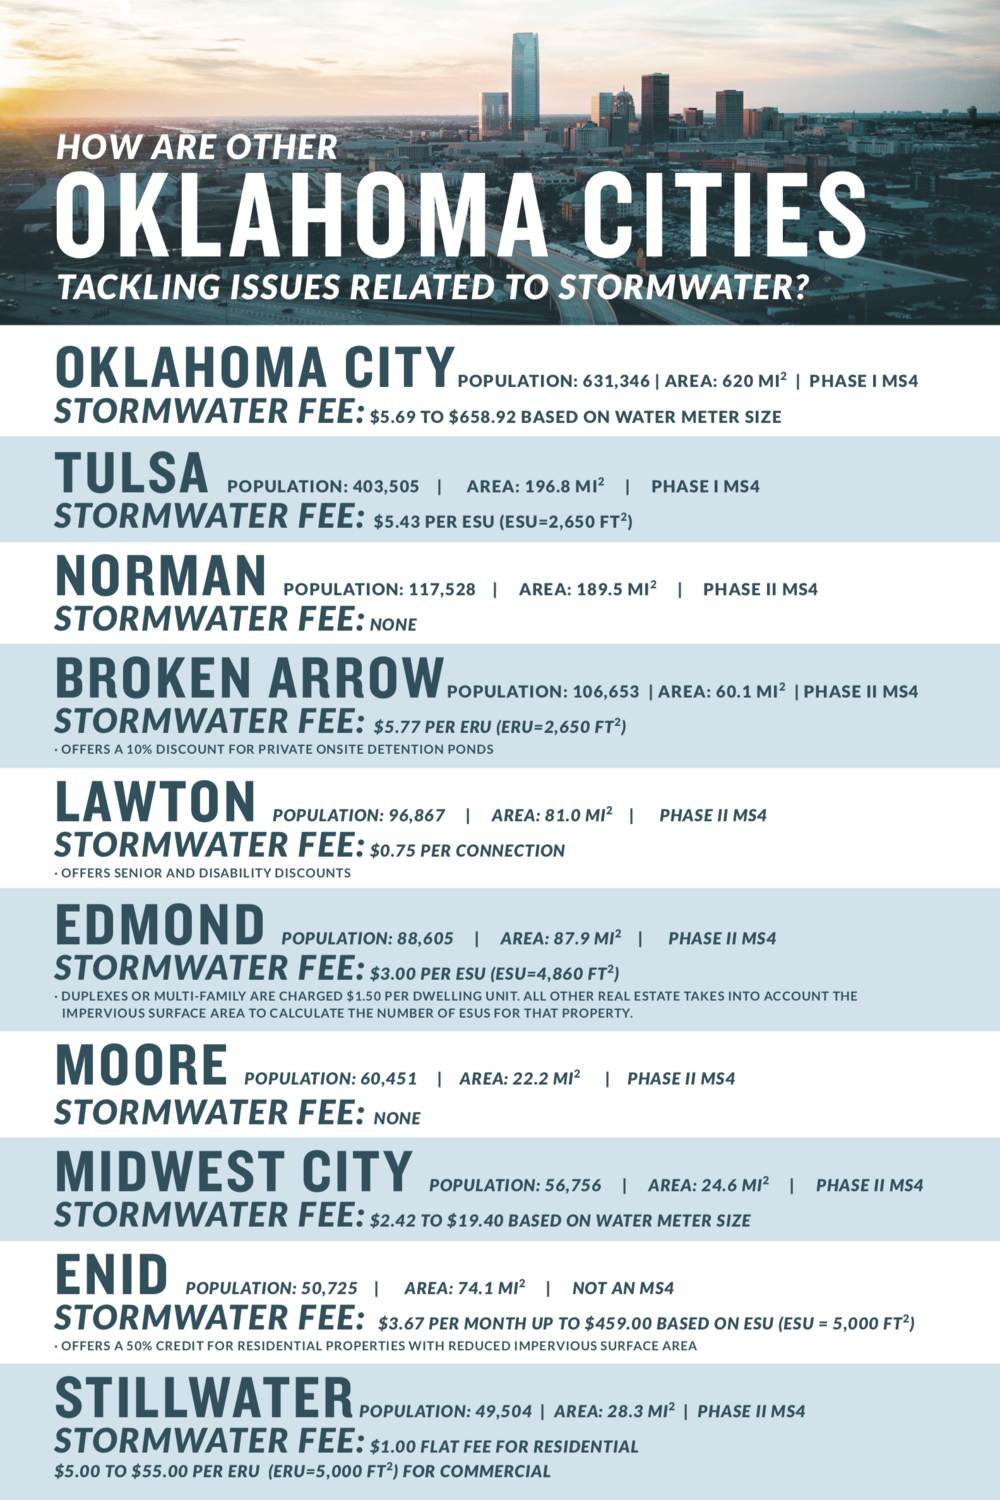 Oklahoma Cities - How are other Oklahoma Cities Tackling Issues Related to Stormwater?